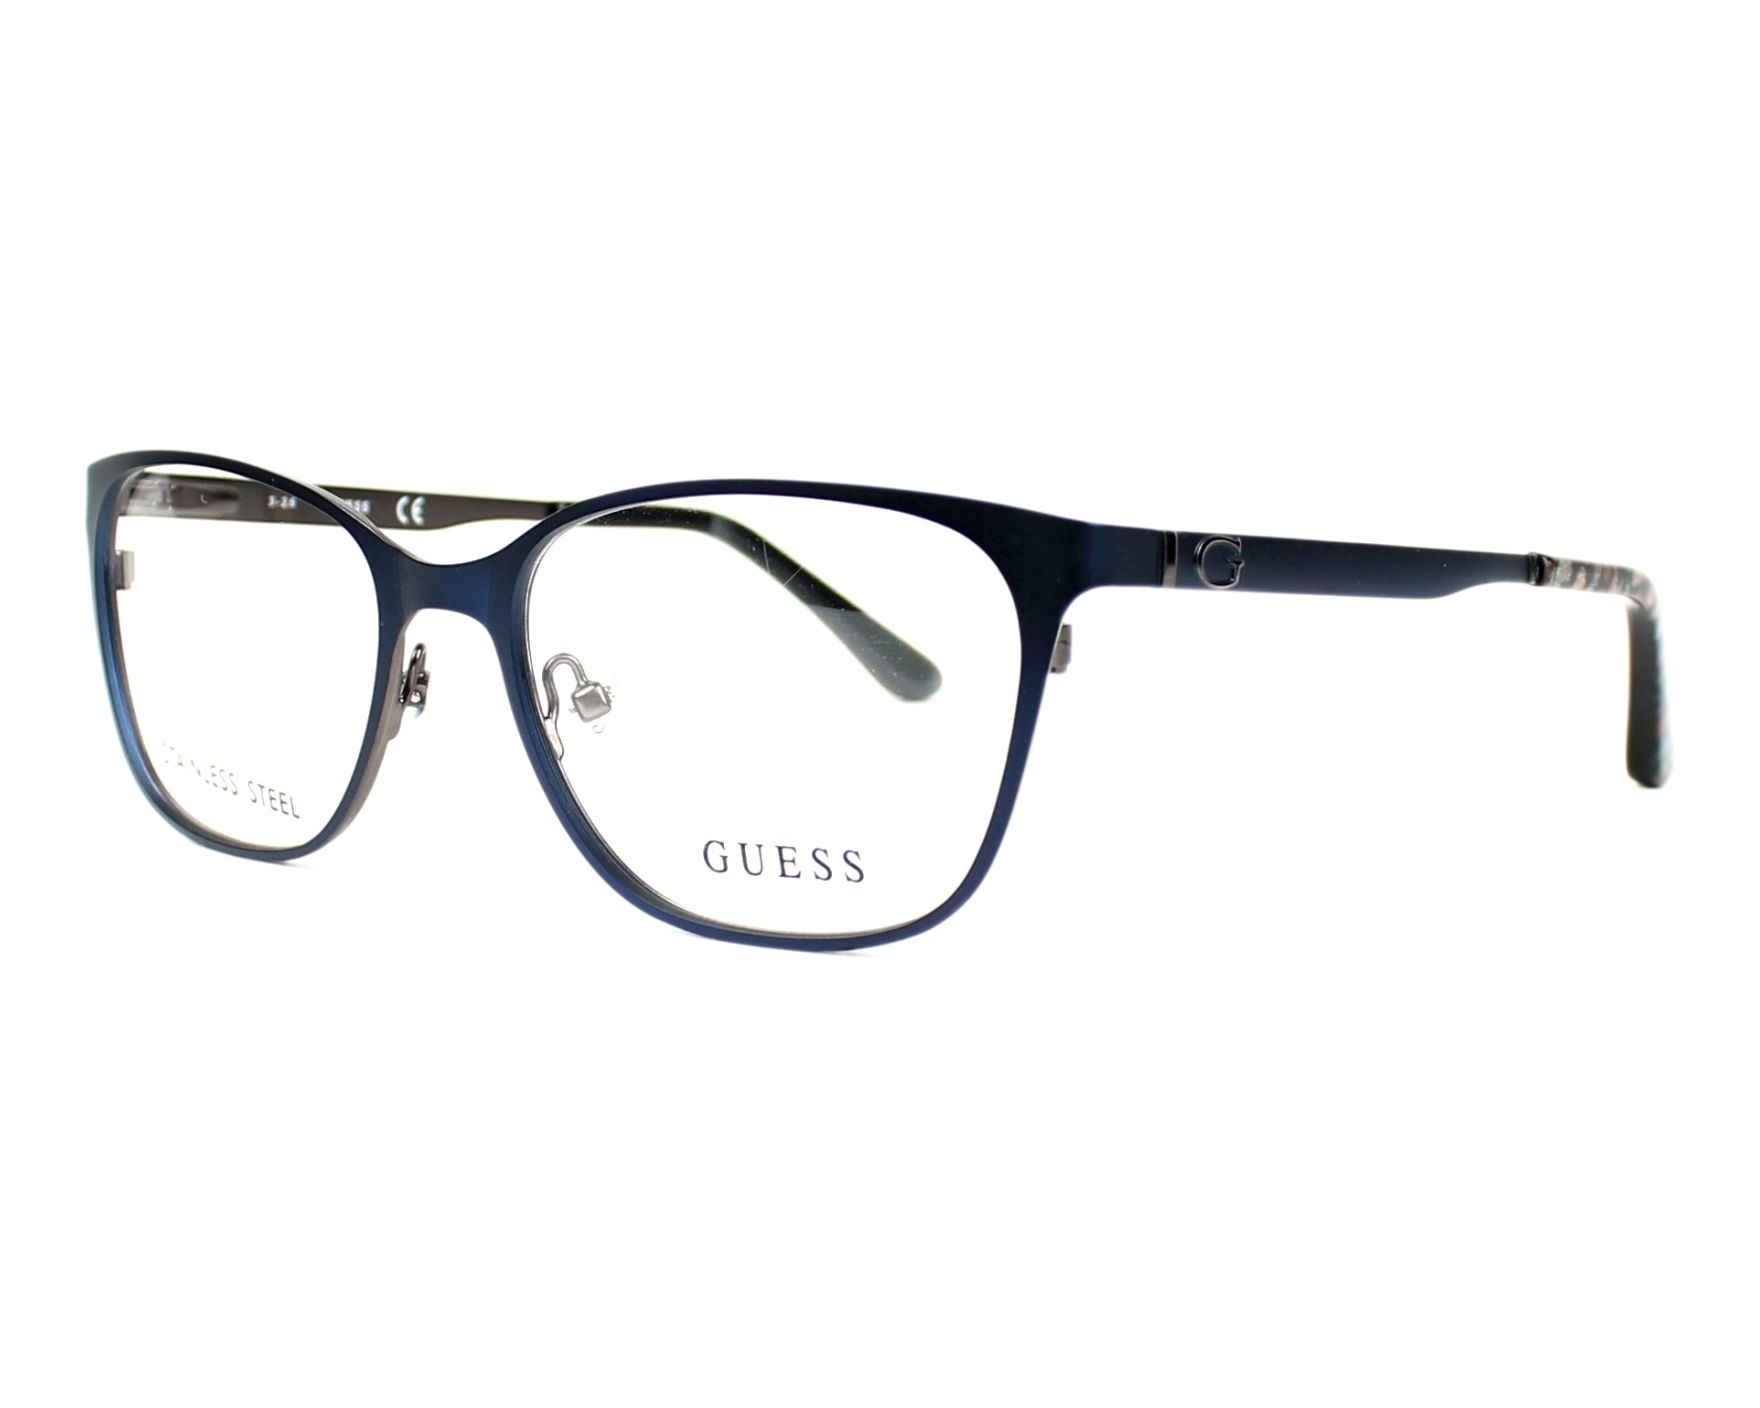 Guess Eyeglasses Blue GU-2629 091 - Visionet US